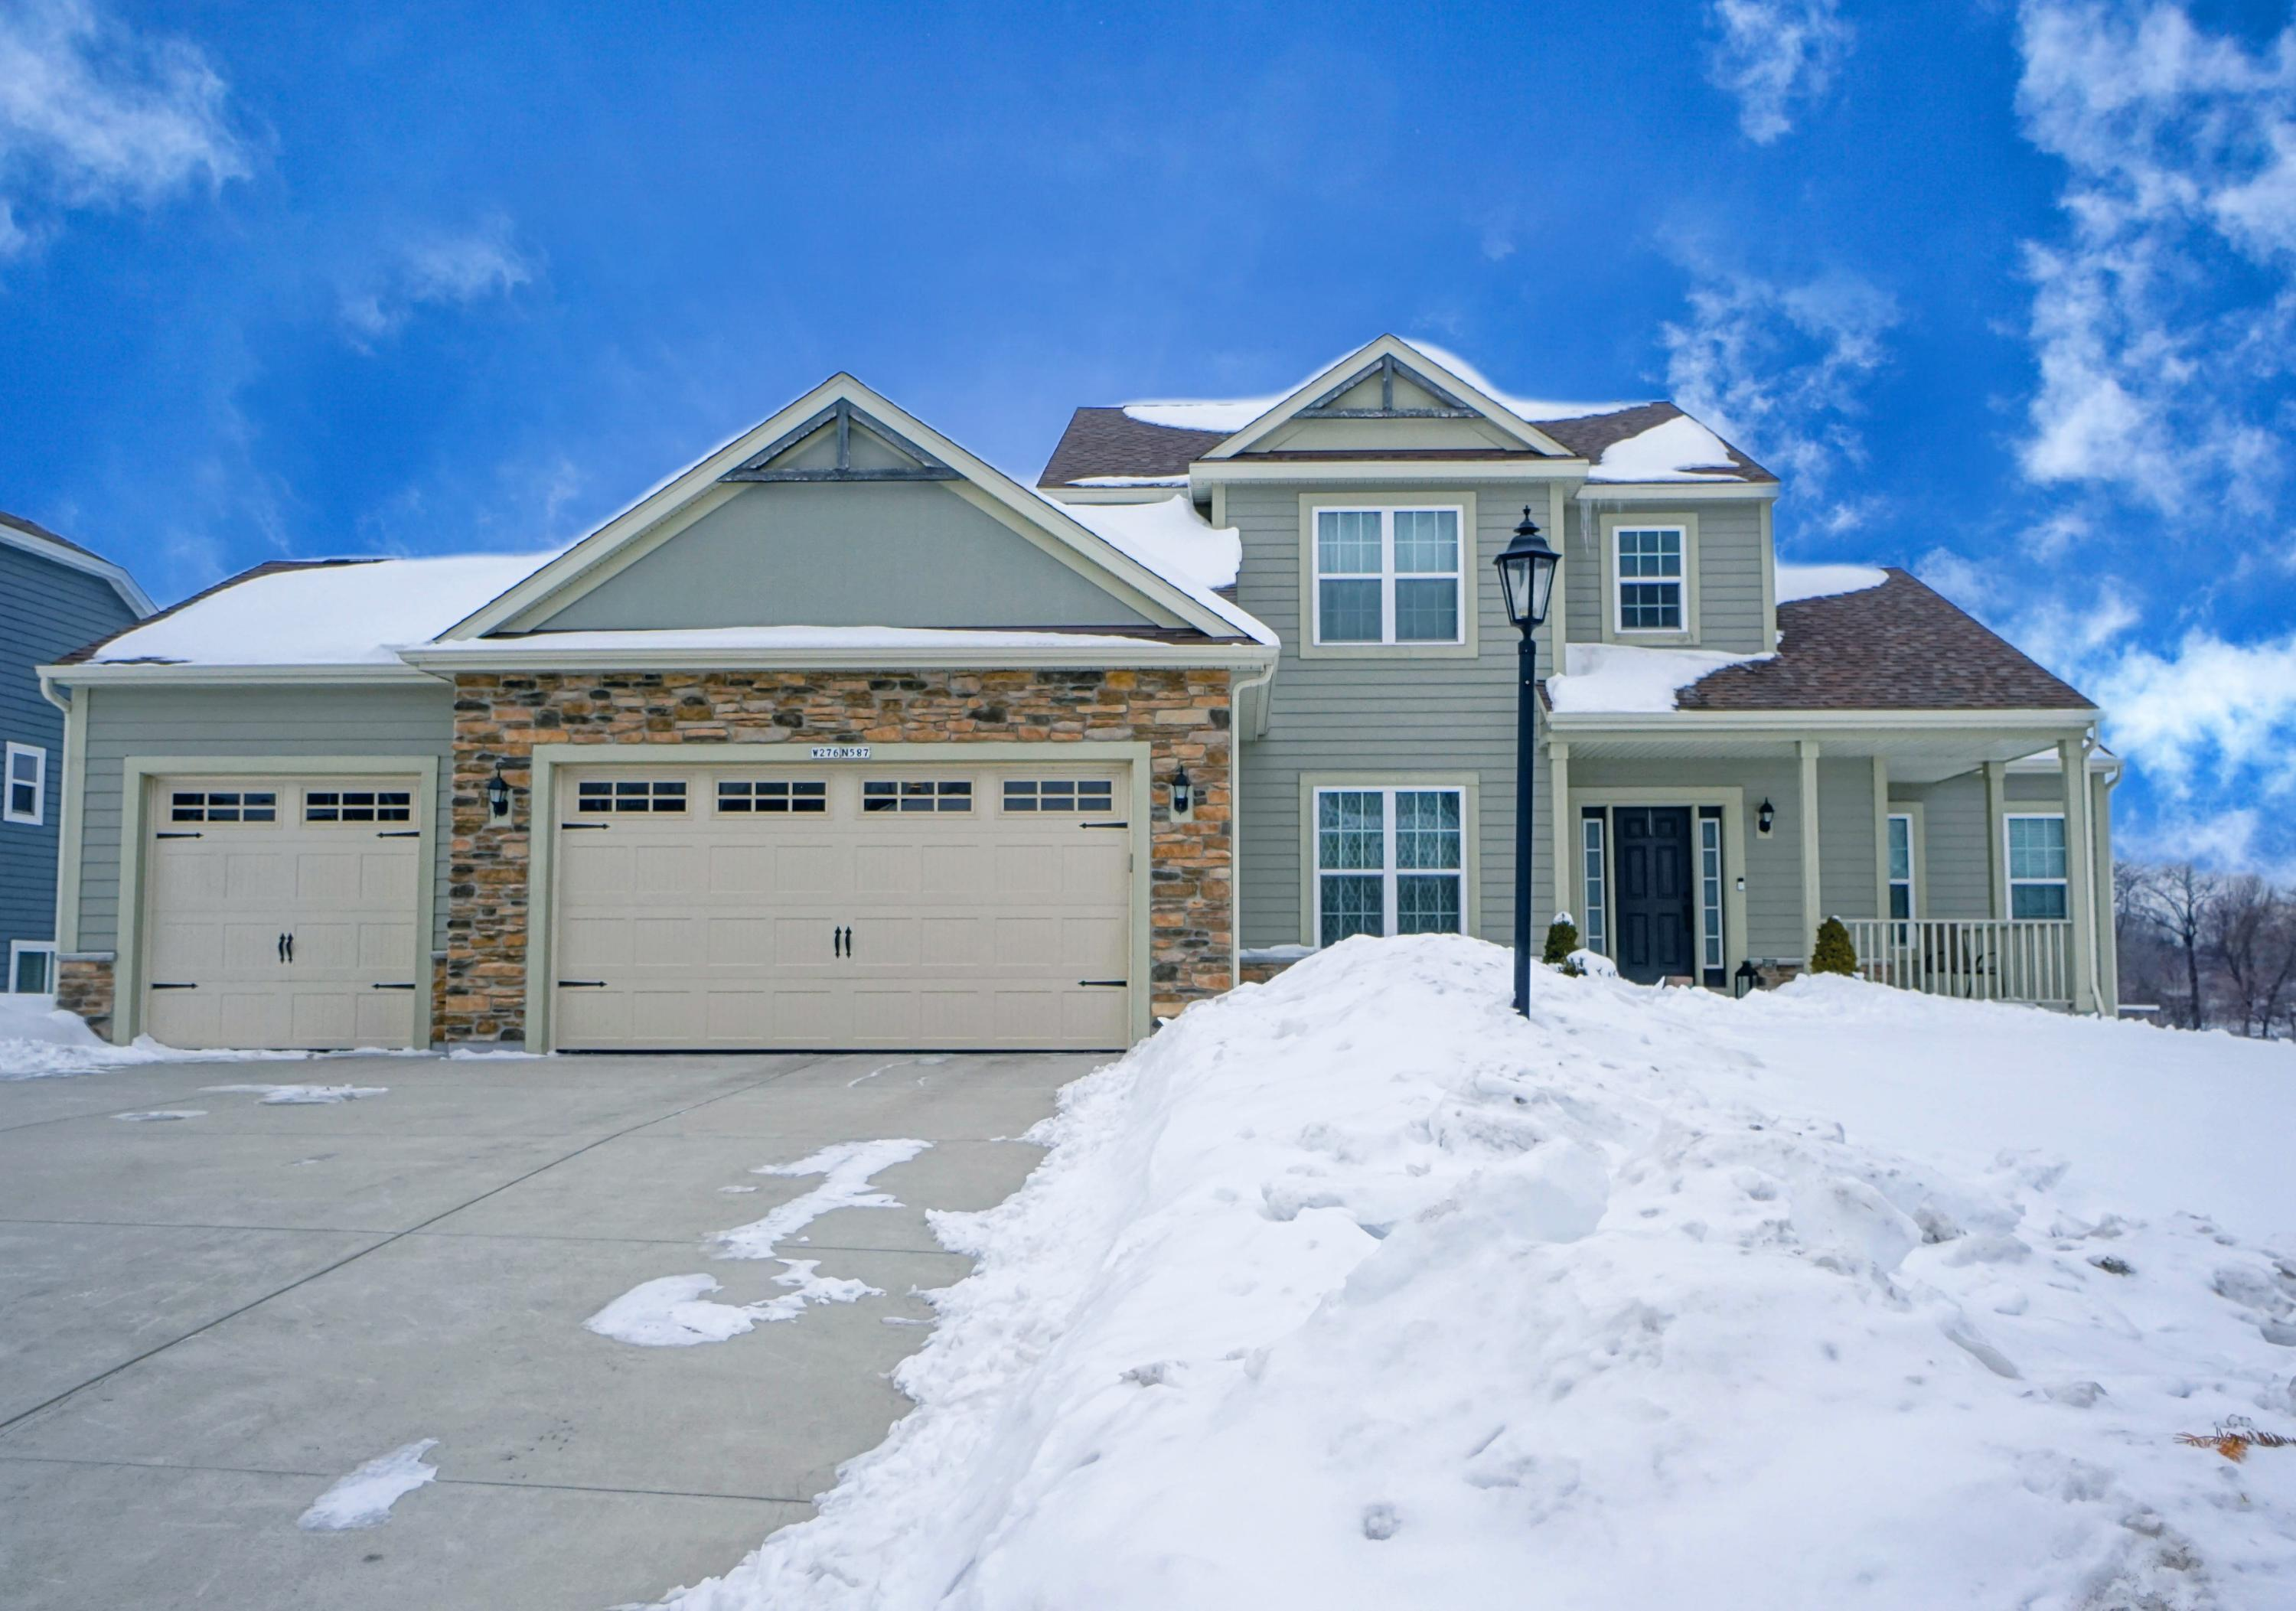 Photo of W276N587 Arrowhead Trl, Waukesha, WI 53188